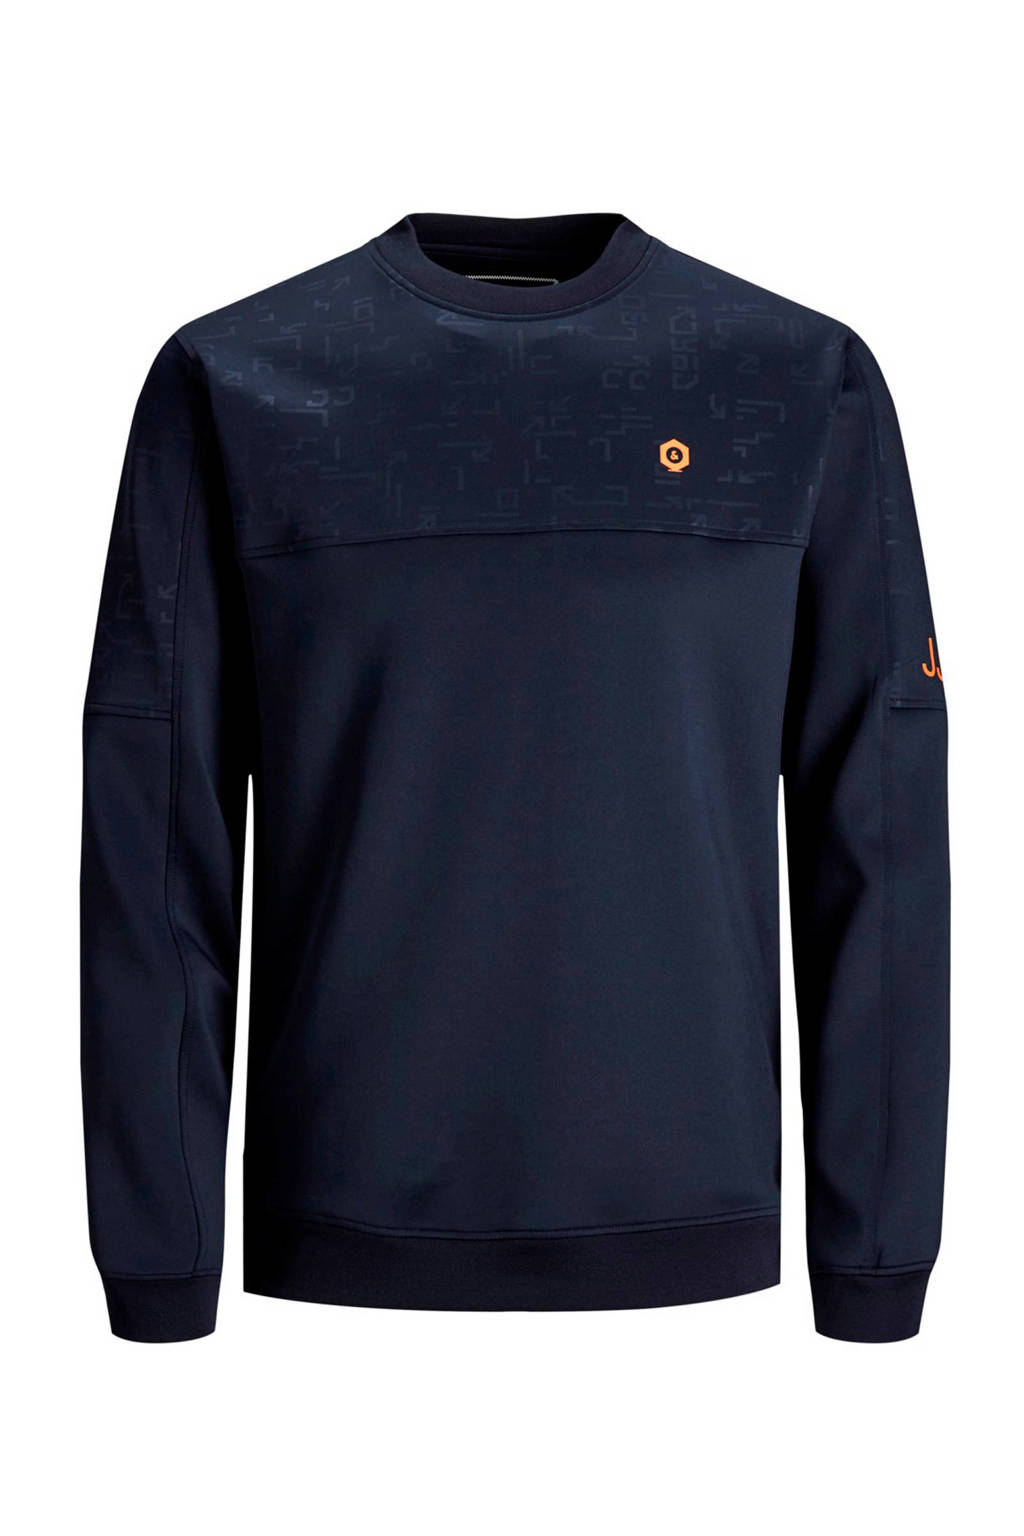 JACK & JONES JUNIOR sweater Mercury met tekst donkerblauw, Donkerblauw